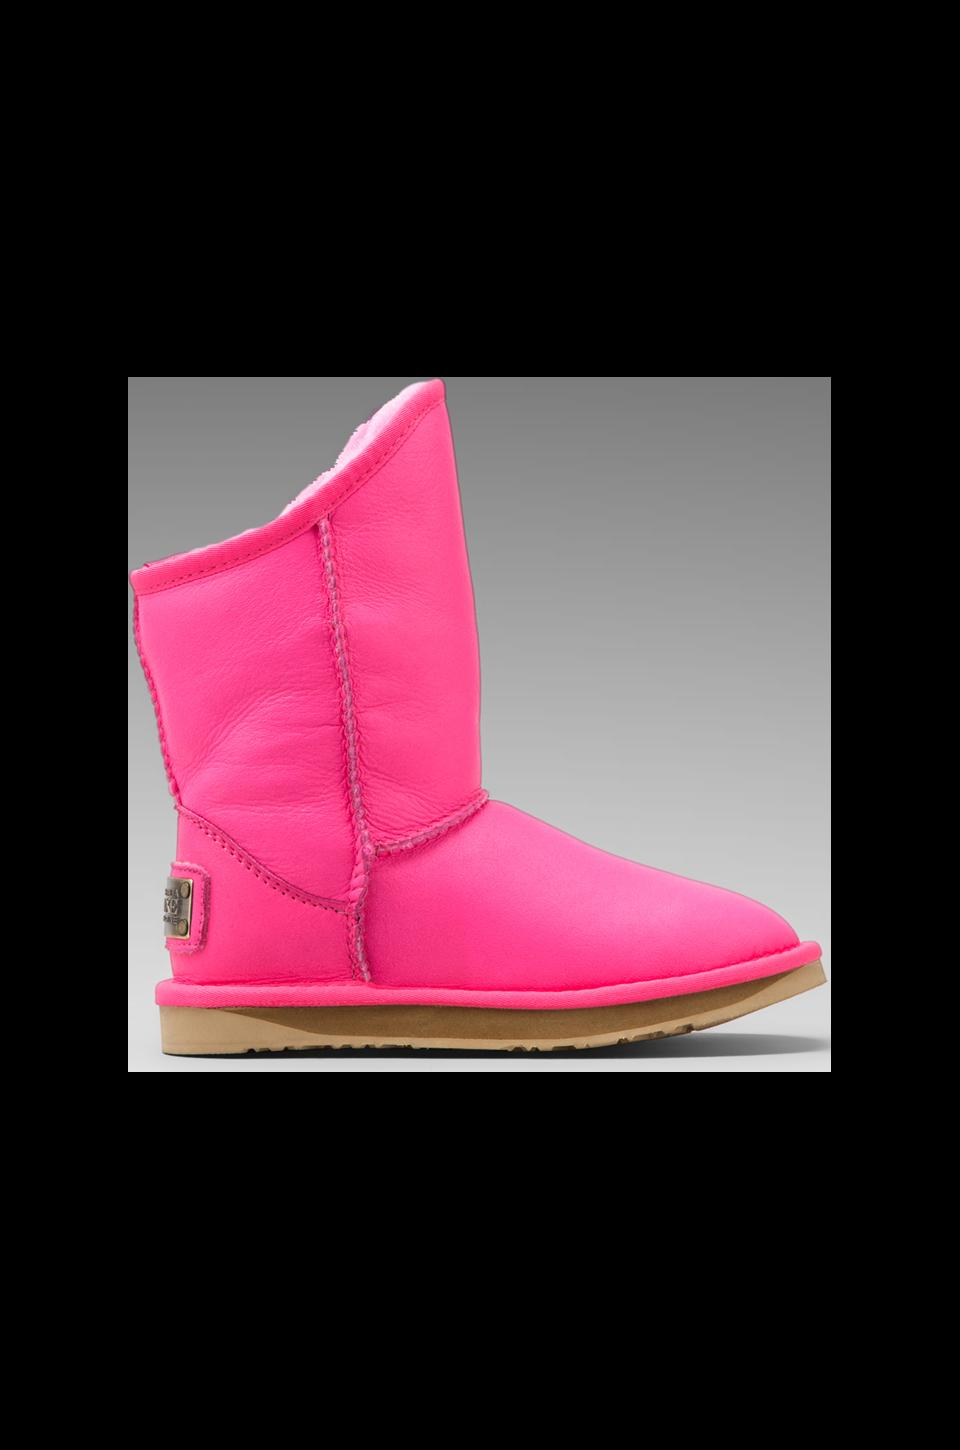 Australia Luxe Collective Cosy Short Boot in Neon Pink